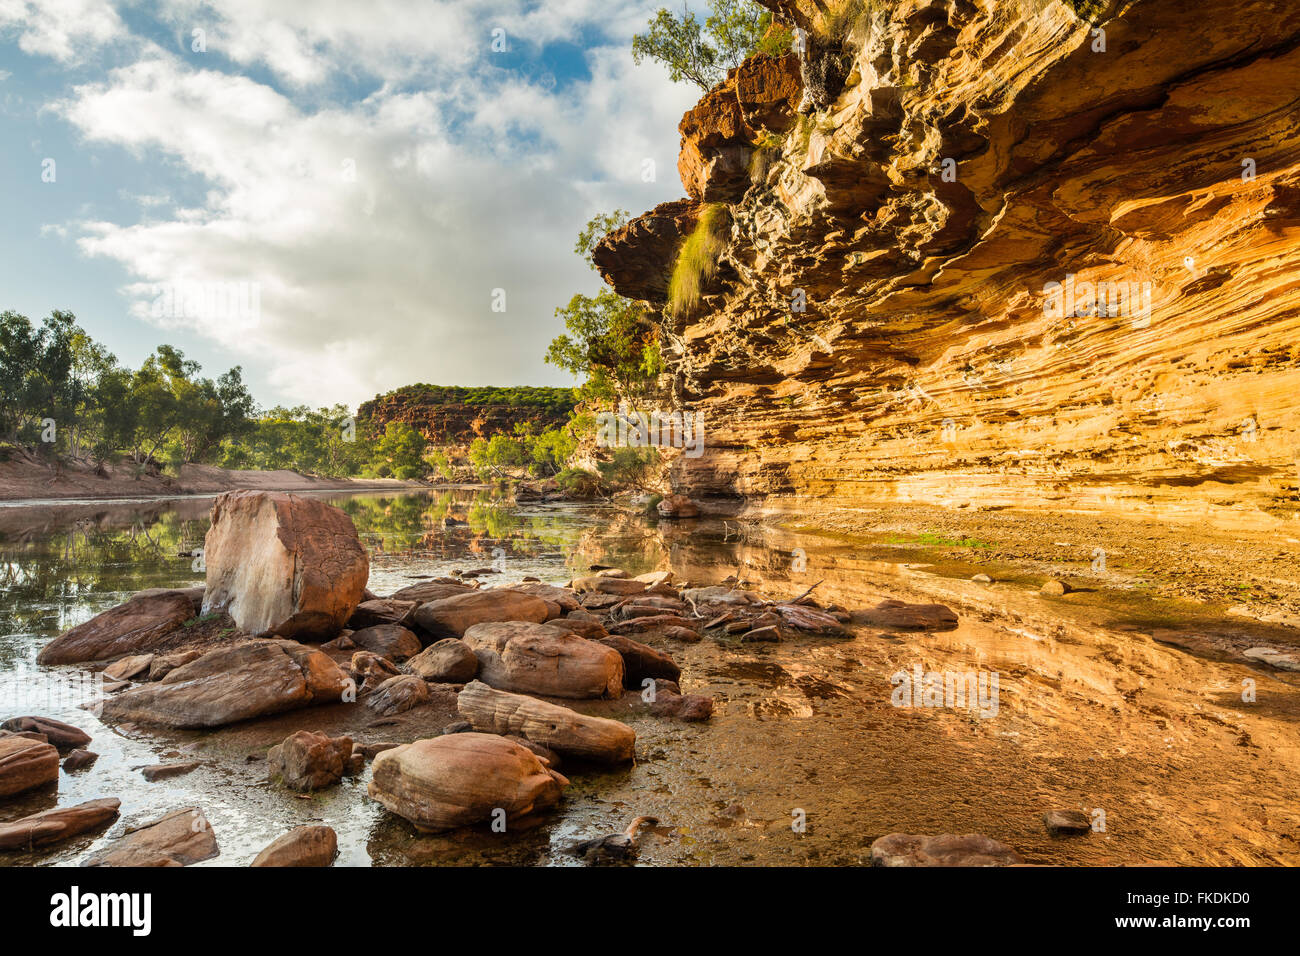 der Murchison River Gorge bei Ross Graham, Kalbarri National Park, Western Australia Stockbild